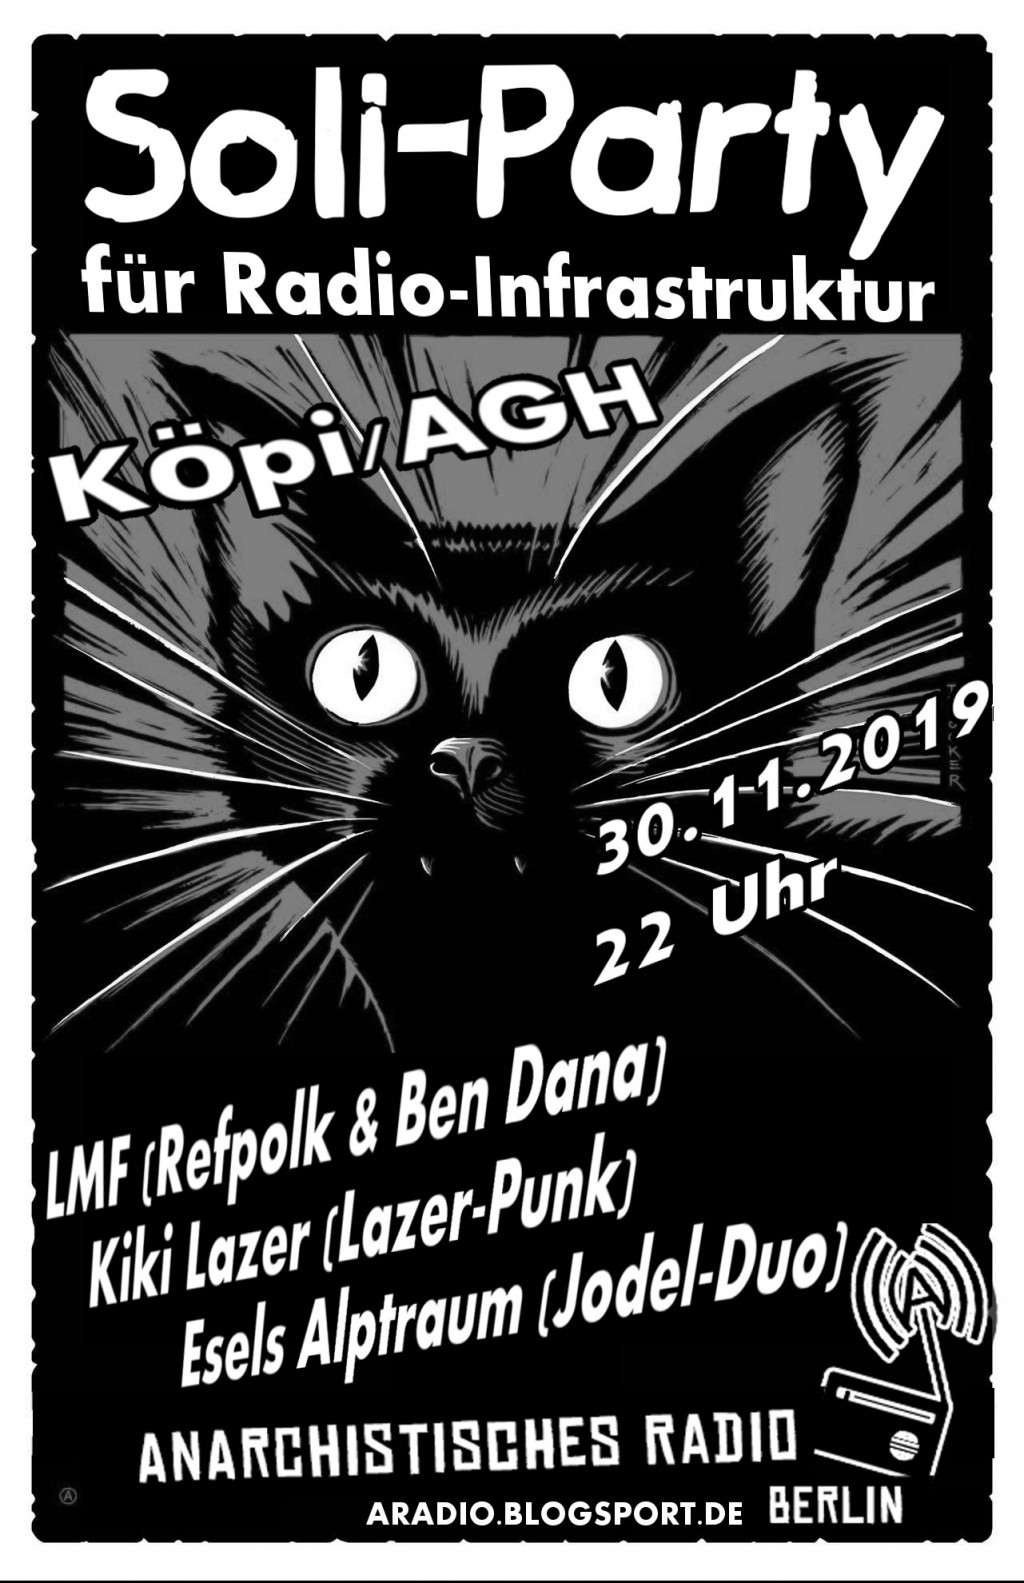 Soliparty in der Köpi/AGH am 30.11.2019!